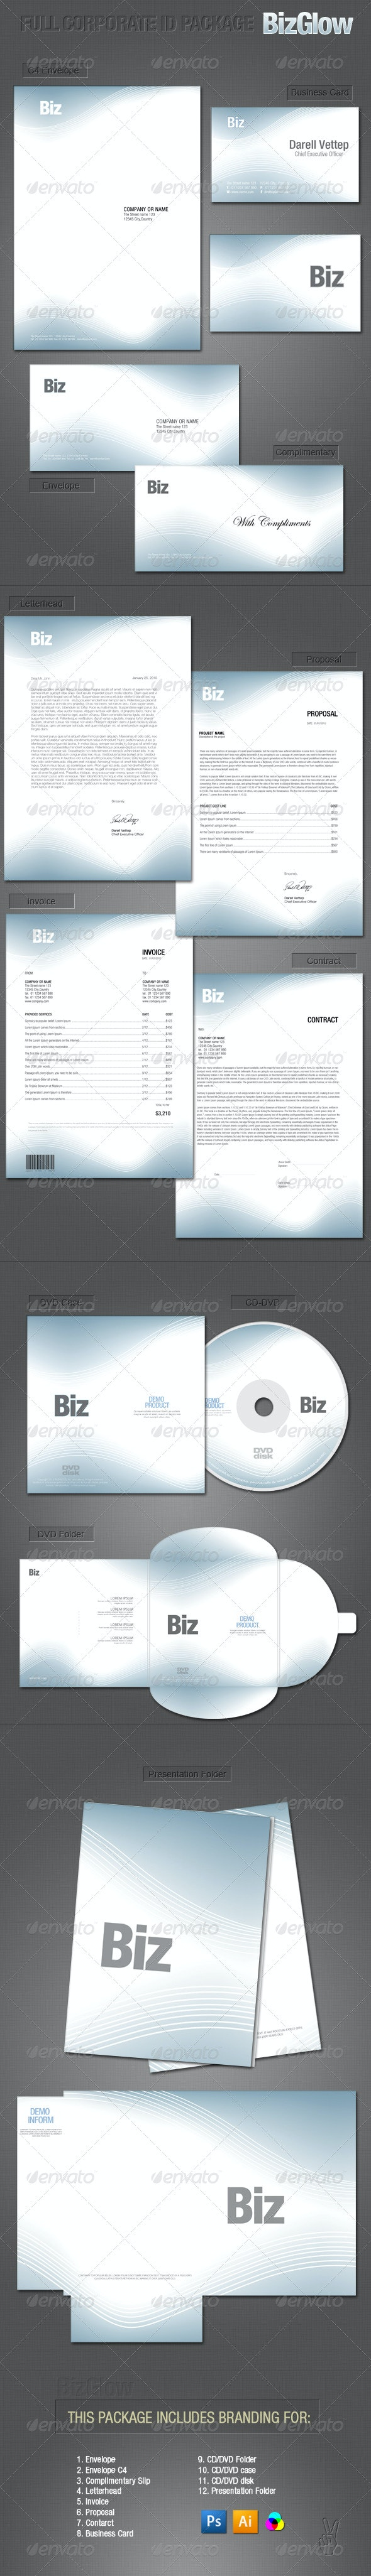 FULL CORPORATE ID PACKAGE - BIZGLOW - Stationery Print Templates